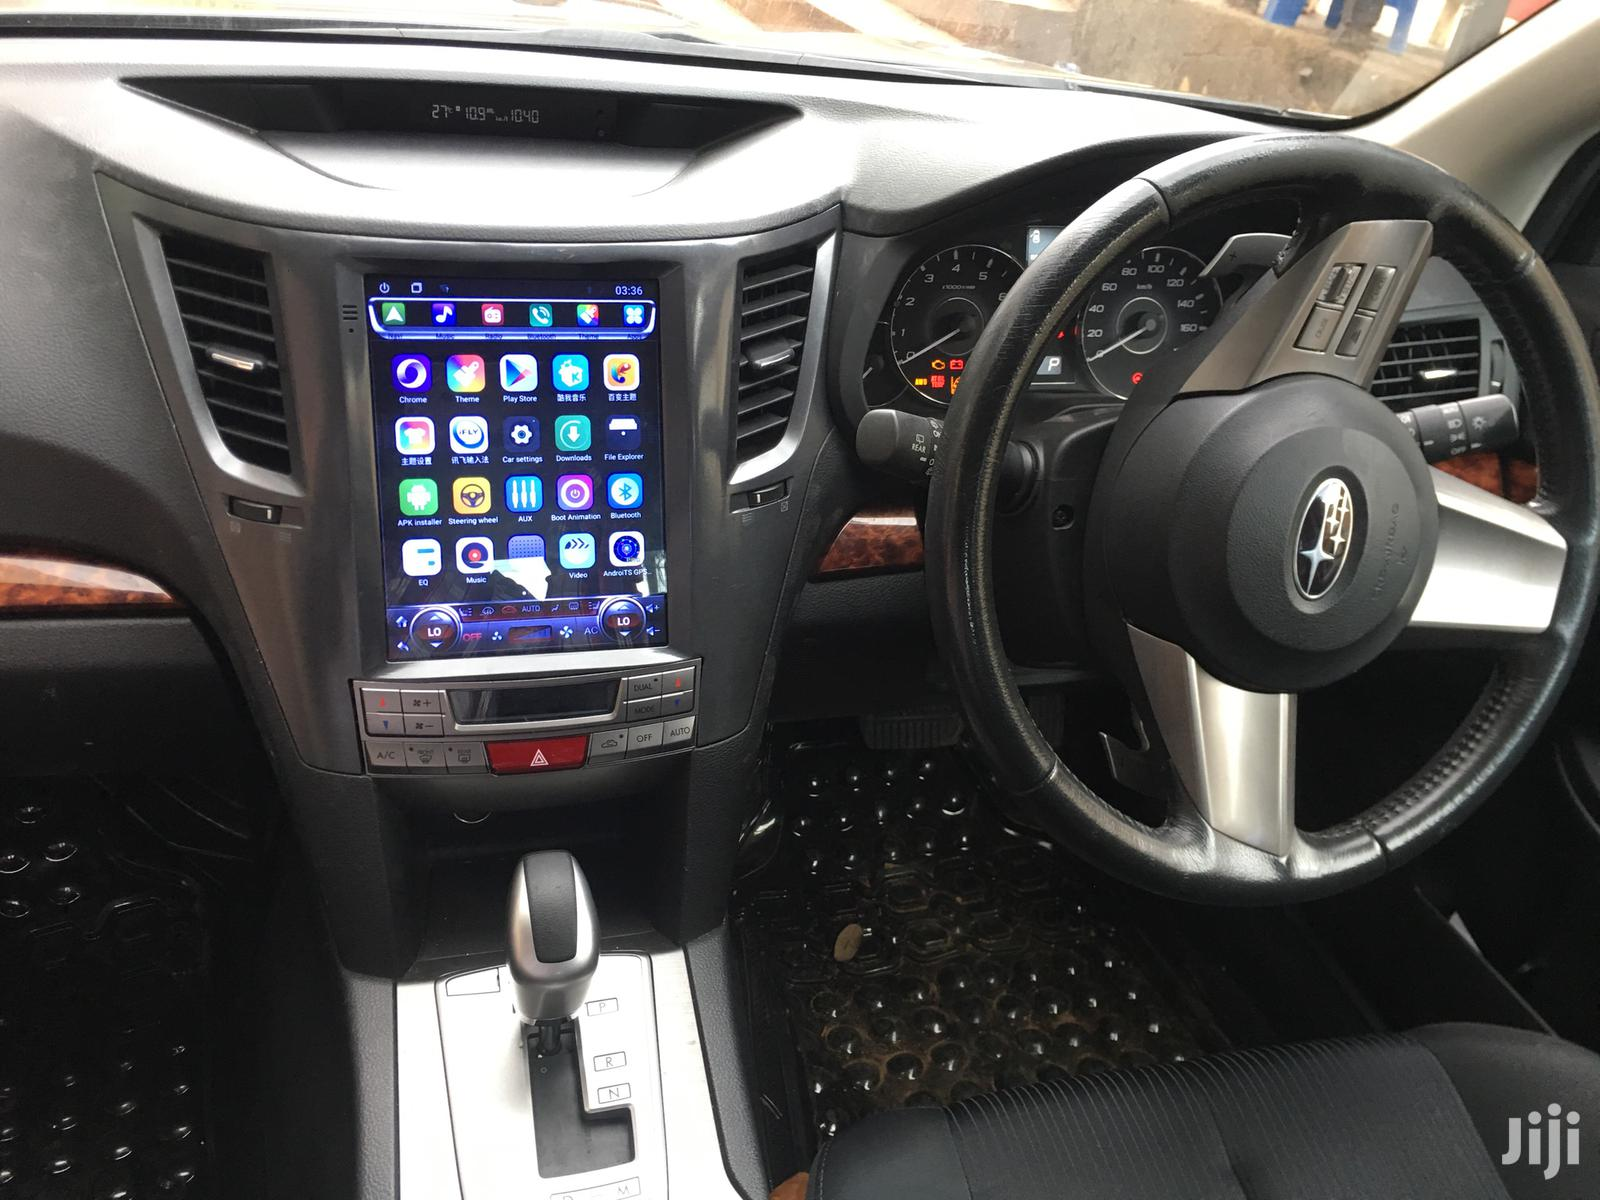 Subaru Legacy/Outback Tesla Style Android Radio | Vehicle Parts & Accessories for sale in Kampala, Central Region, Uganda